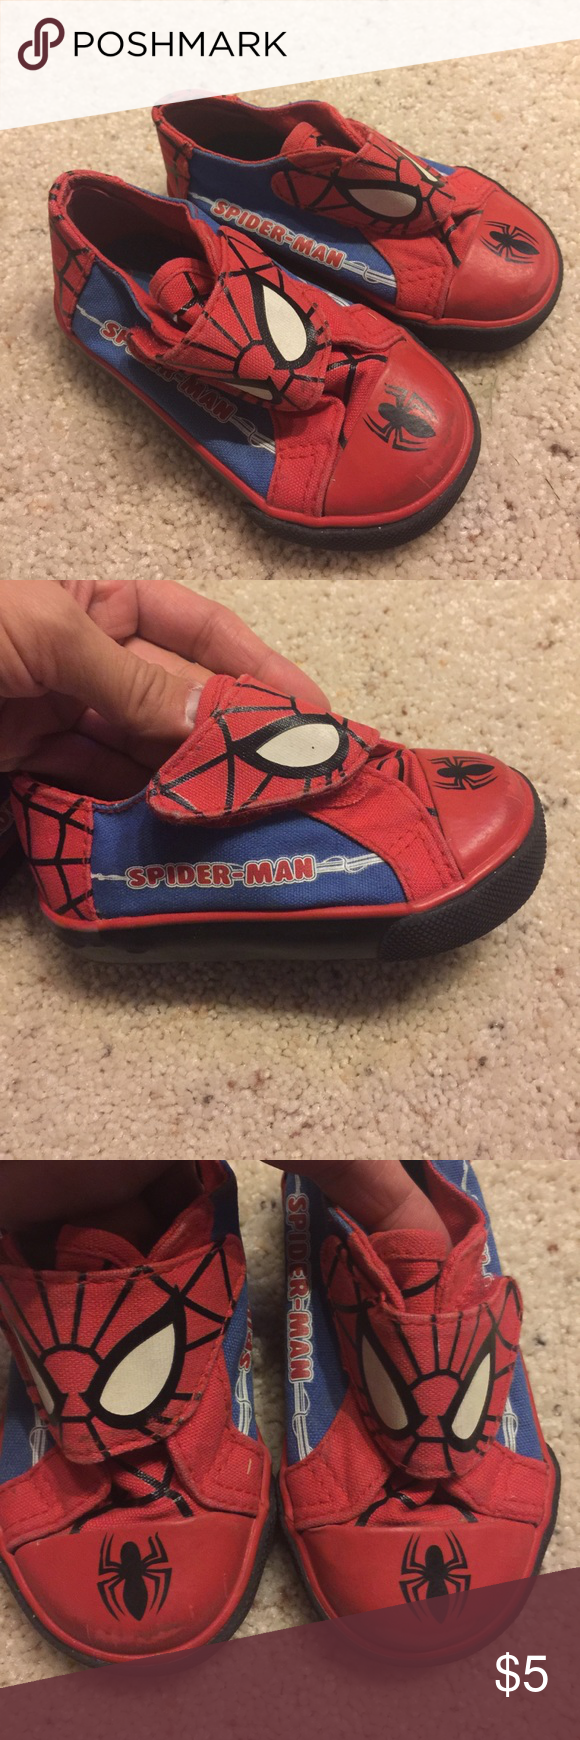 c1f09161bef7 Spider Man sneakers size 5.5 Used condition. Adorable sneakers. Velcro.  Refer pics for condition. Pet and smoke free home Marvel Shoes Sneakers